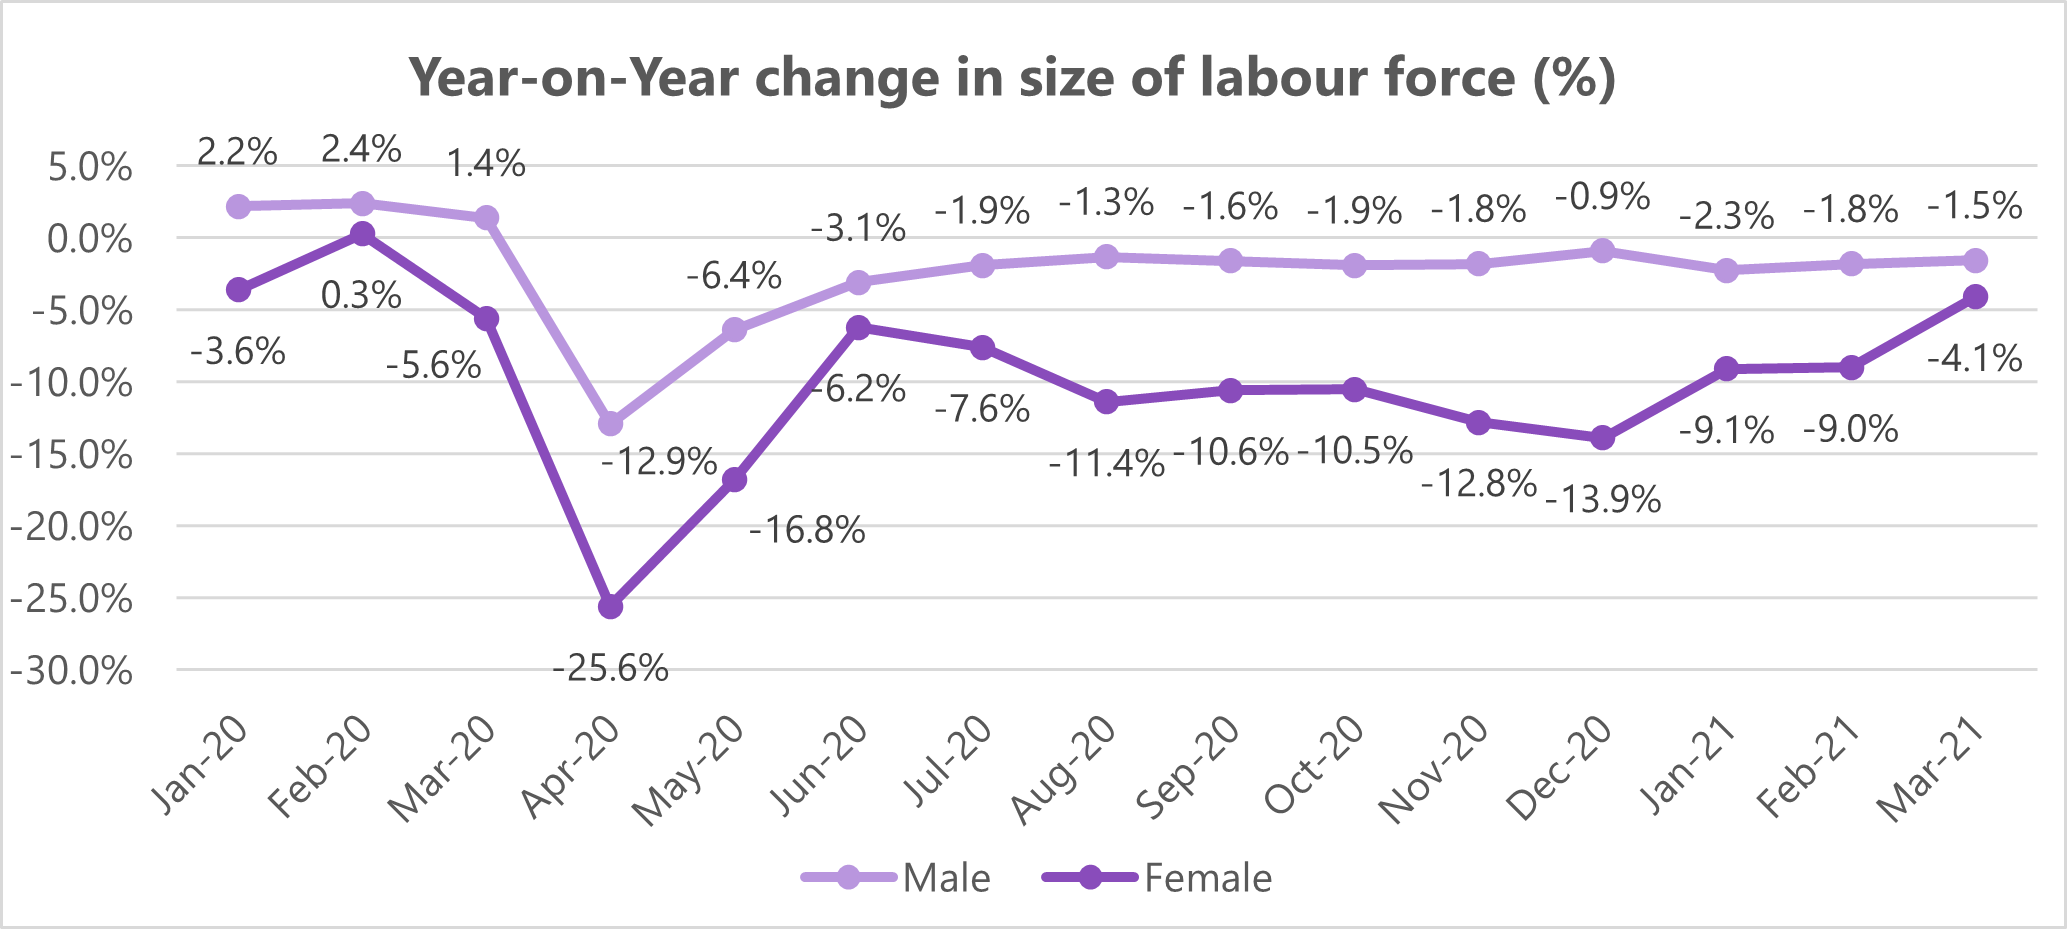 Graph showing year on year change in size of labor force for both men and women in India